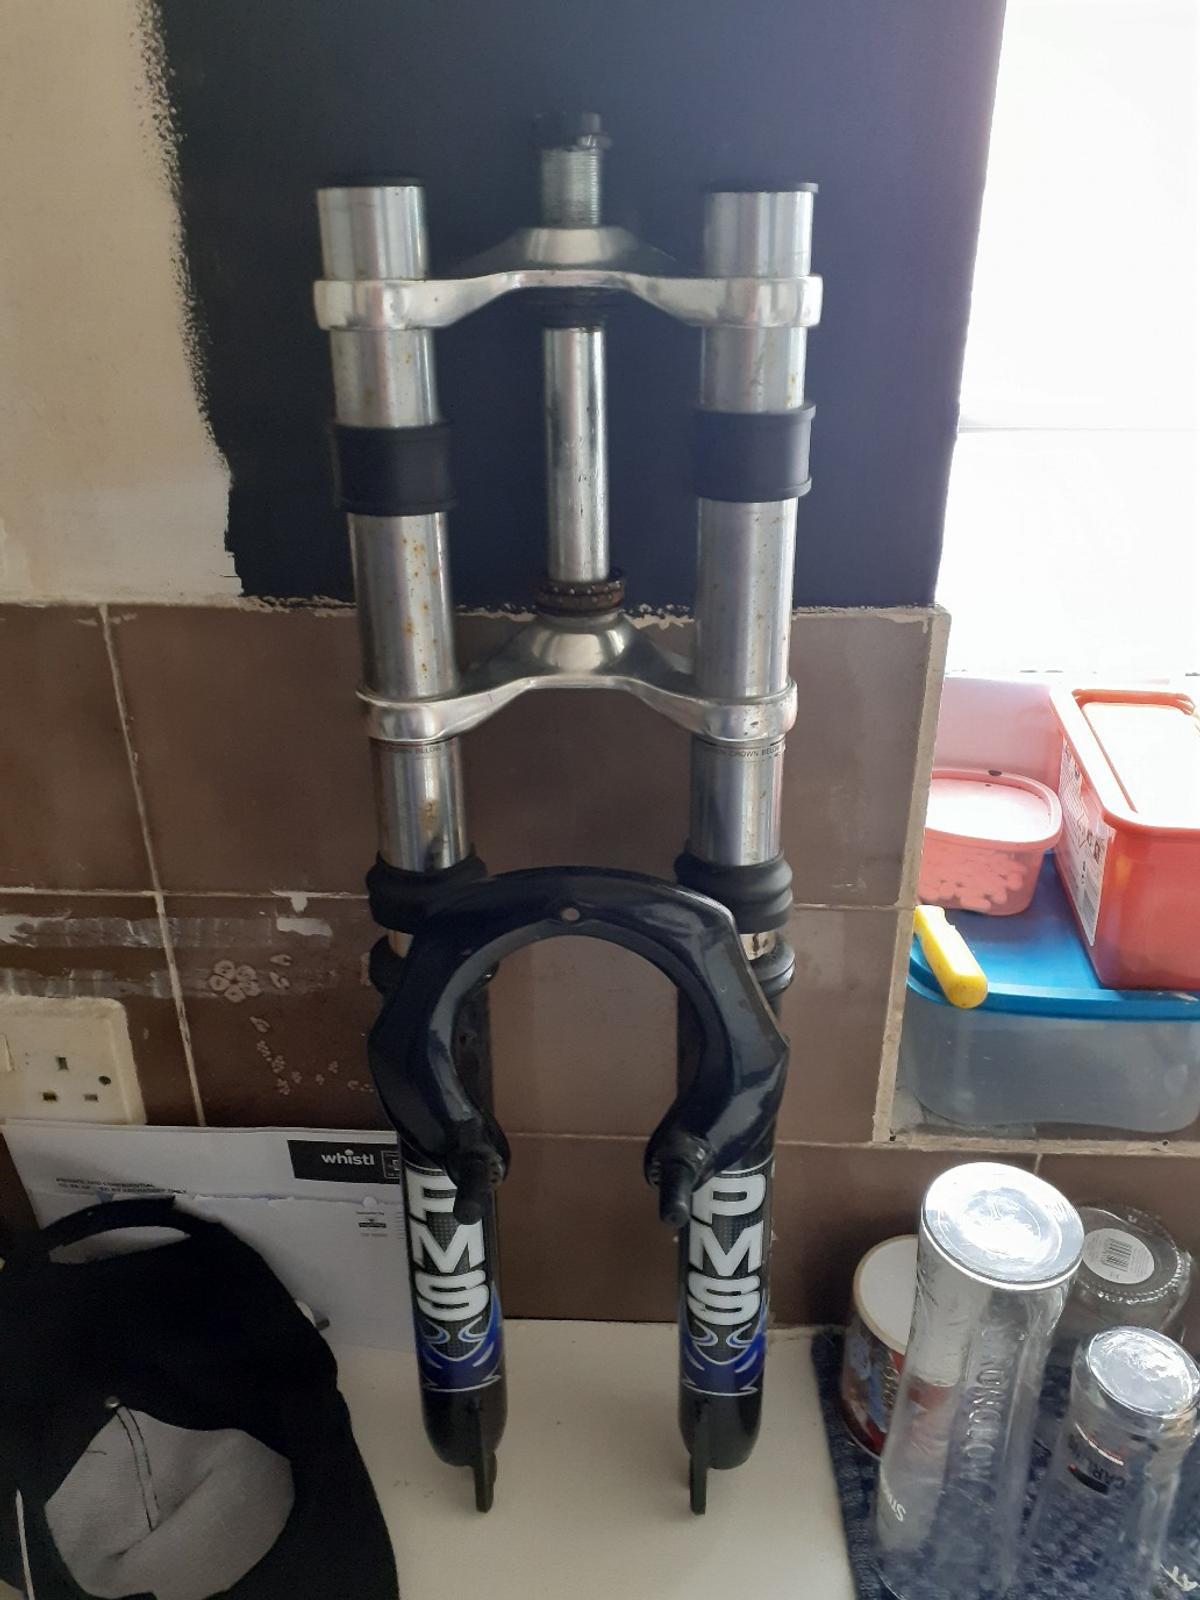 26-in mountain bike forks testing the weather in to see how much these are worth